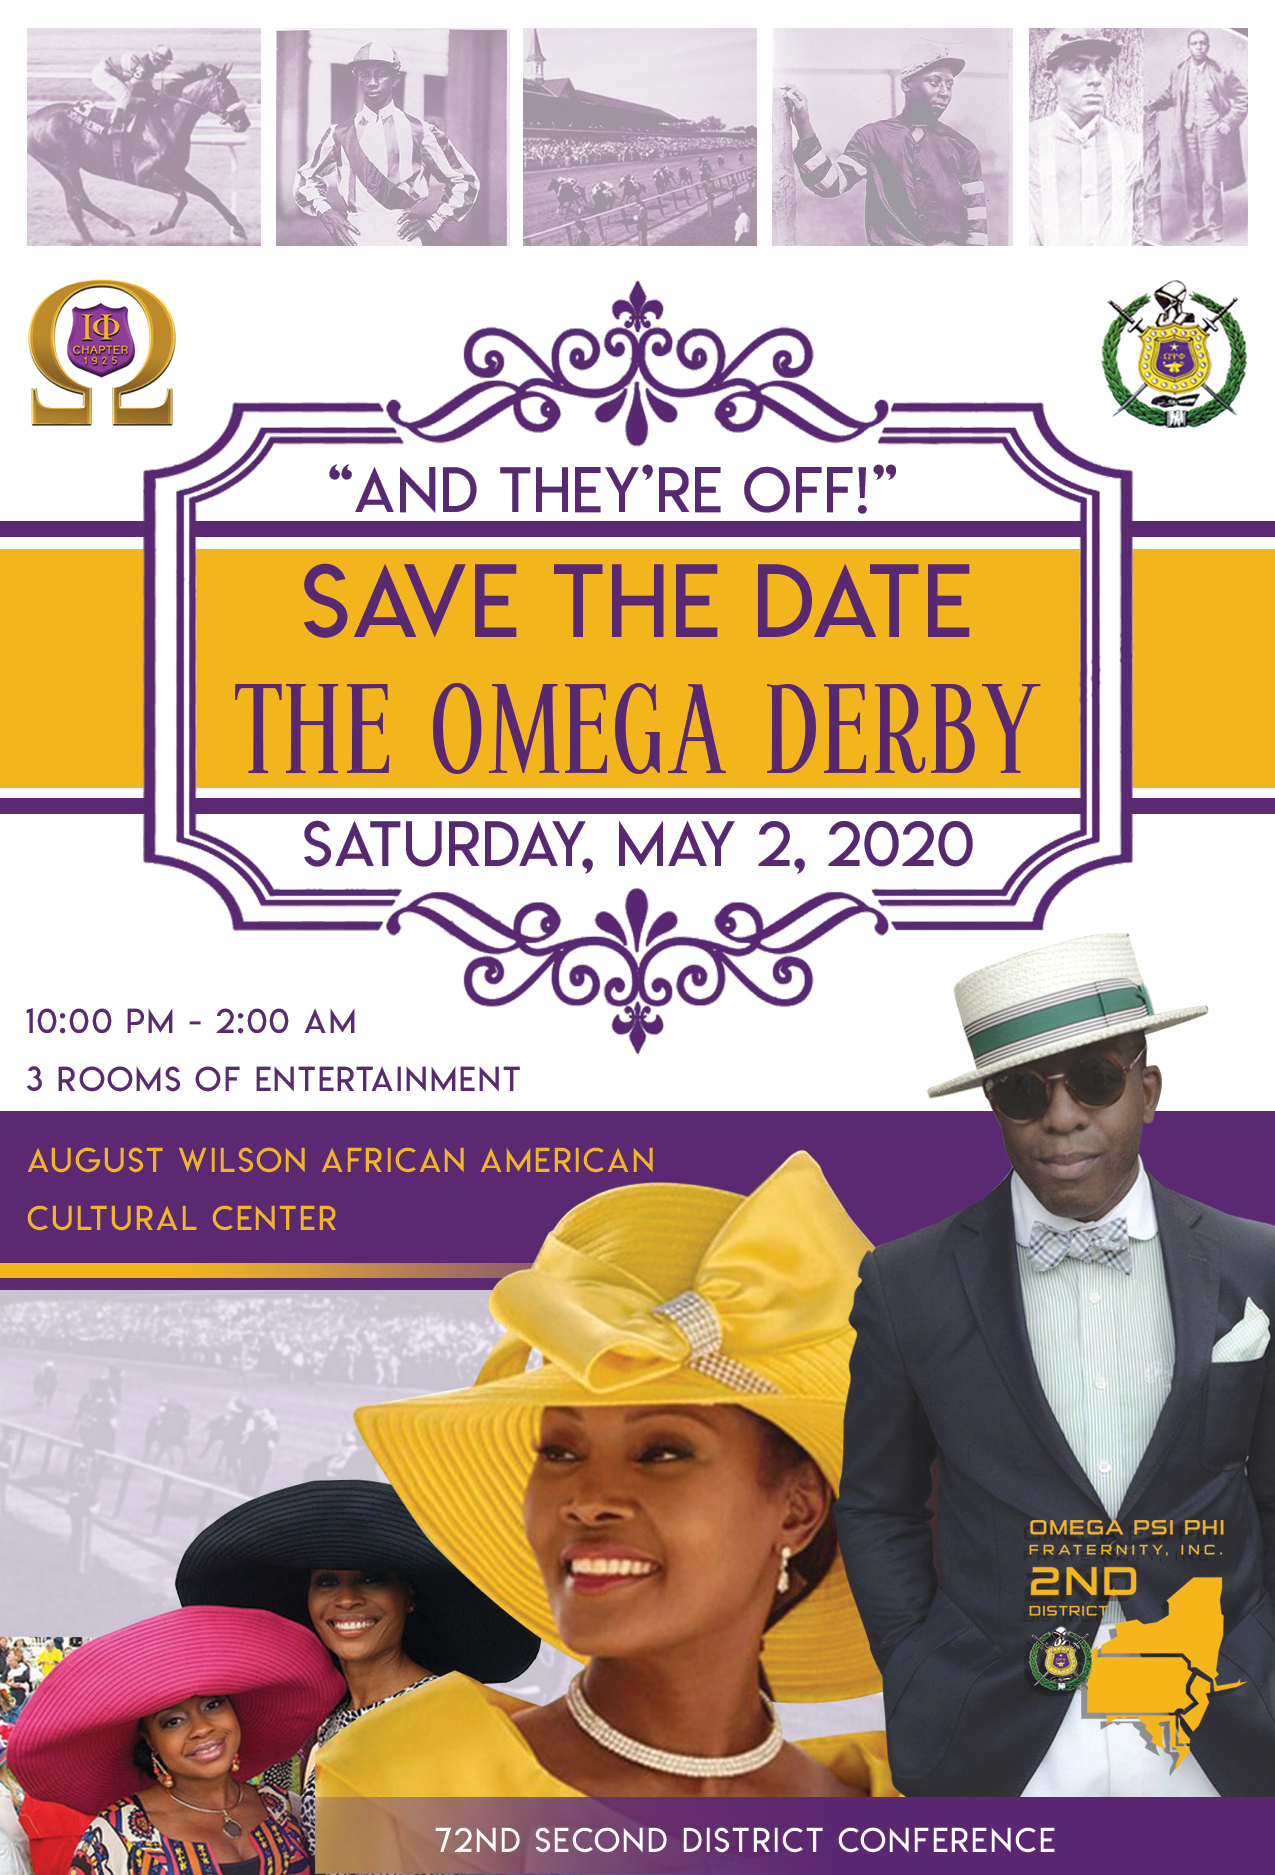 Omega Kentucky Derby Theme Party 00005